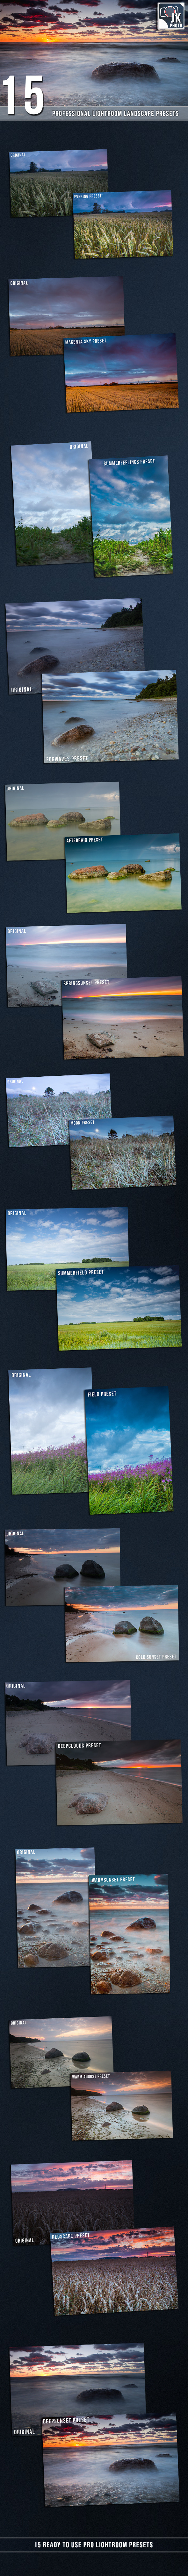 15 PRO Landscape and Nature Lightroom presets by jevgenikfoto | GraphicRiver